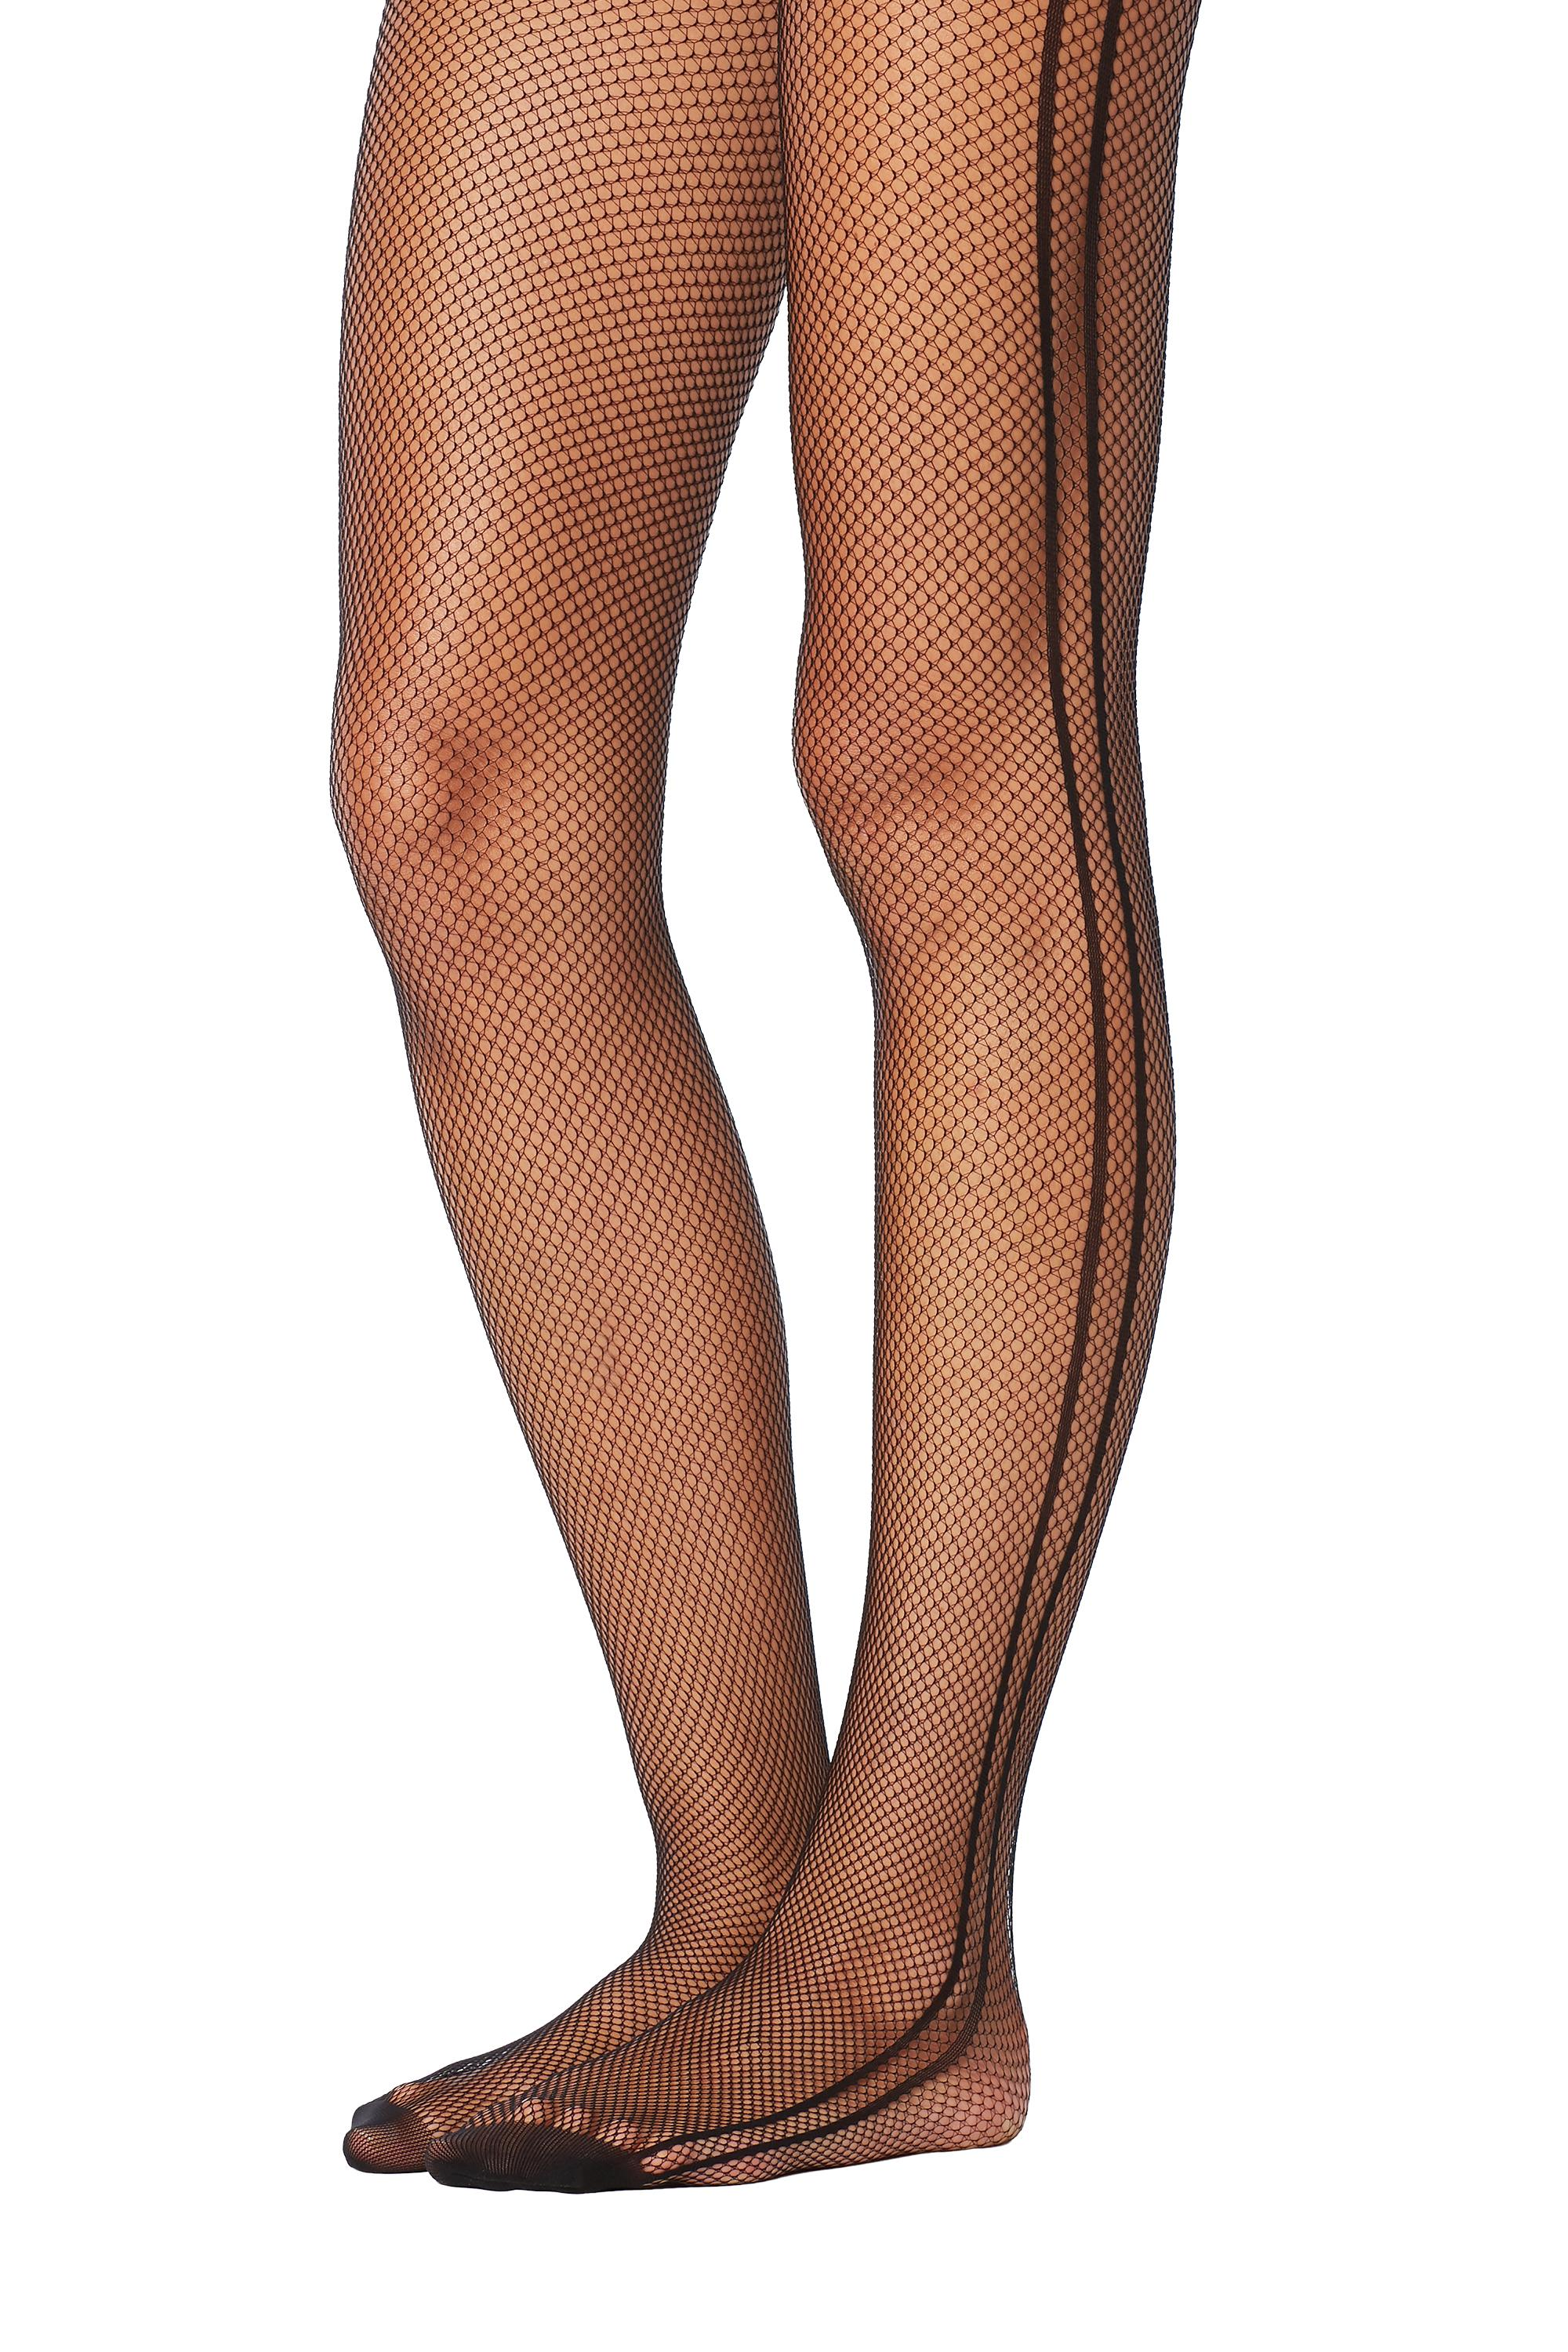 06fc3a3a745 Patterned Micro-Fishnet Tights - Tezenis